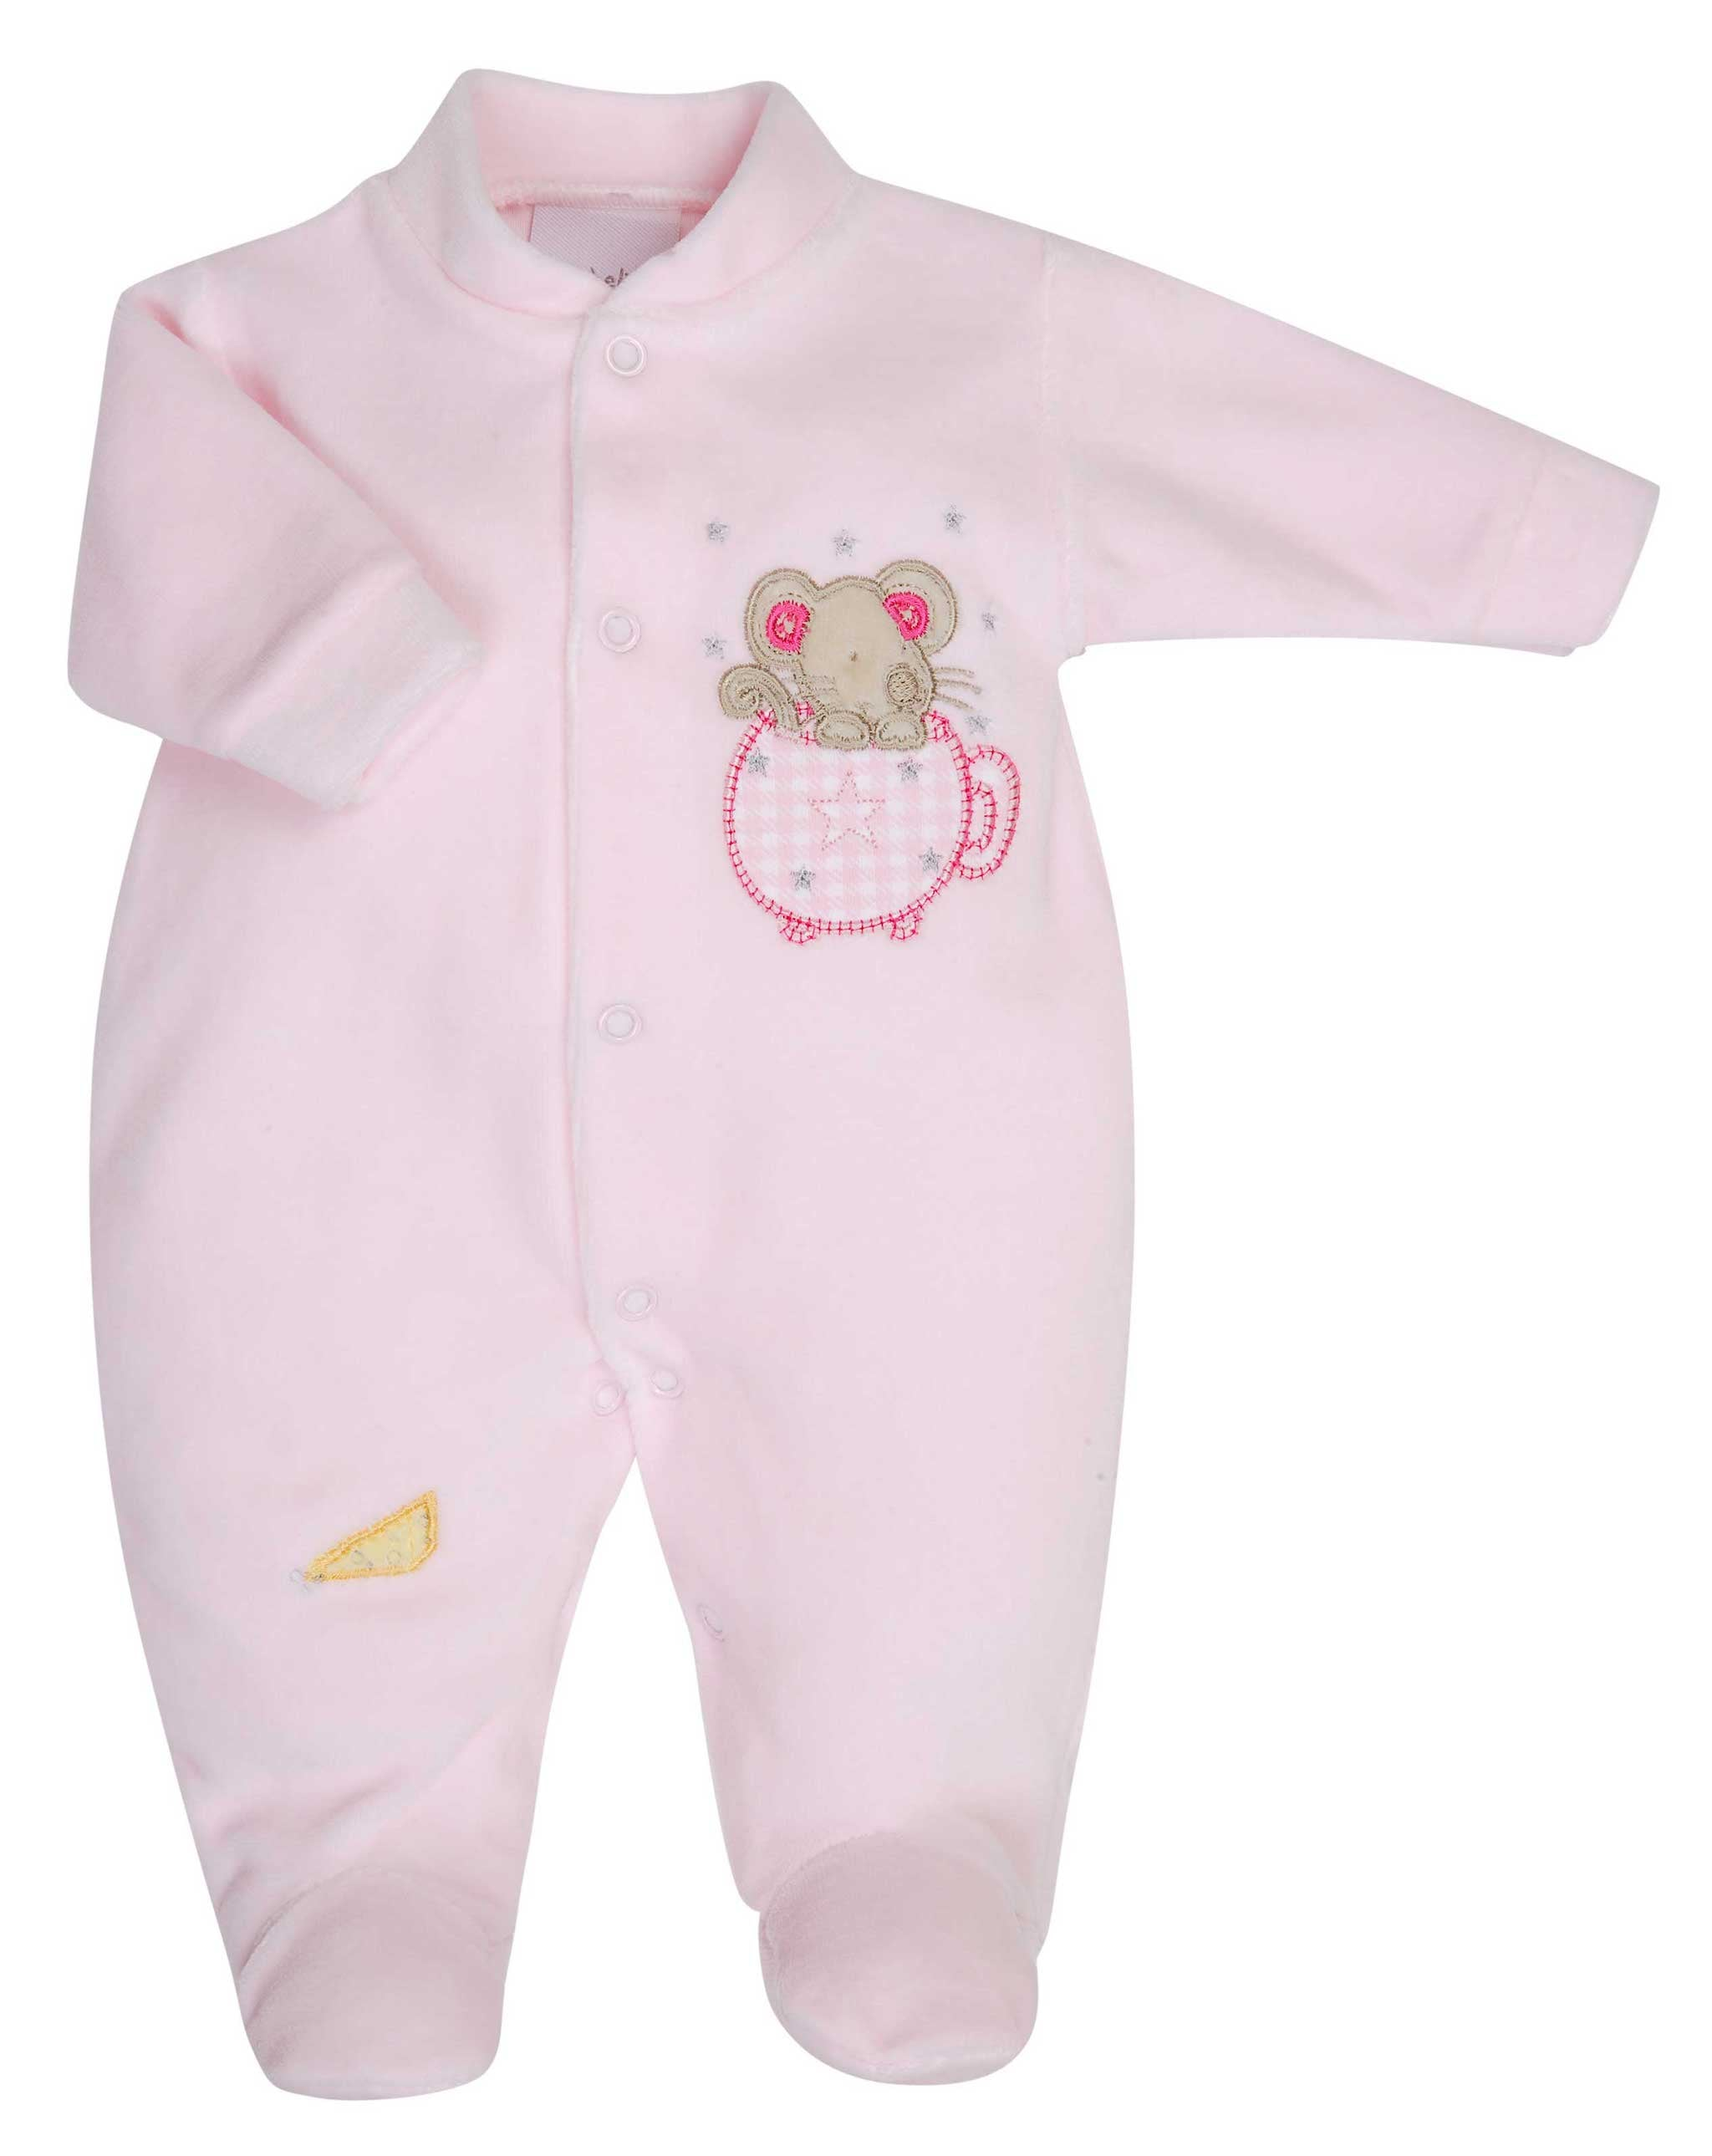 Newborn and Infant Clothing